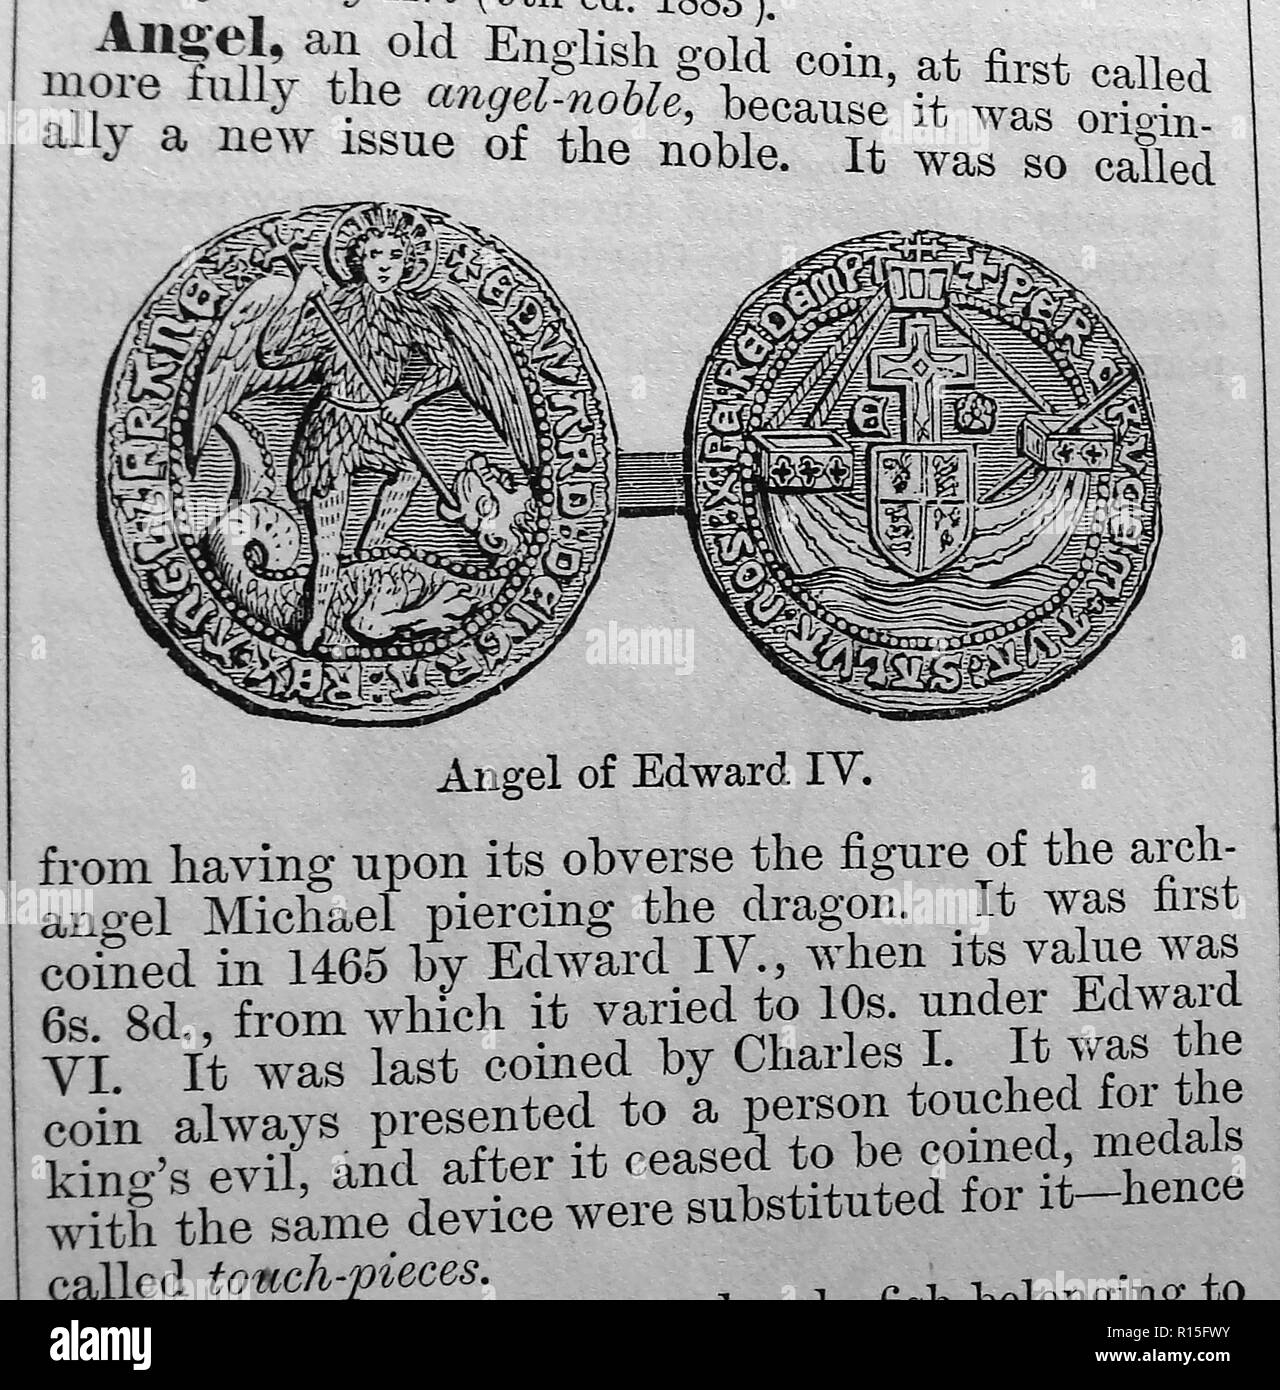 An Angel (old English coin) from an entry in Chamber's Encyclopedia 1888 (The touch piece associated with Scrofula or the King's Evil) - Stock Image